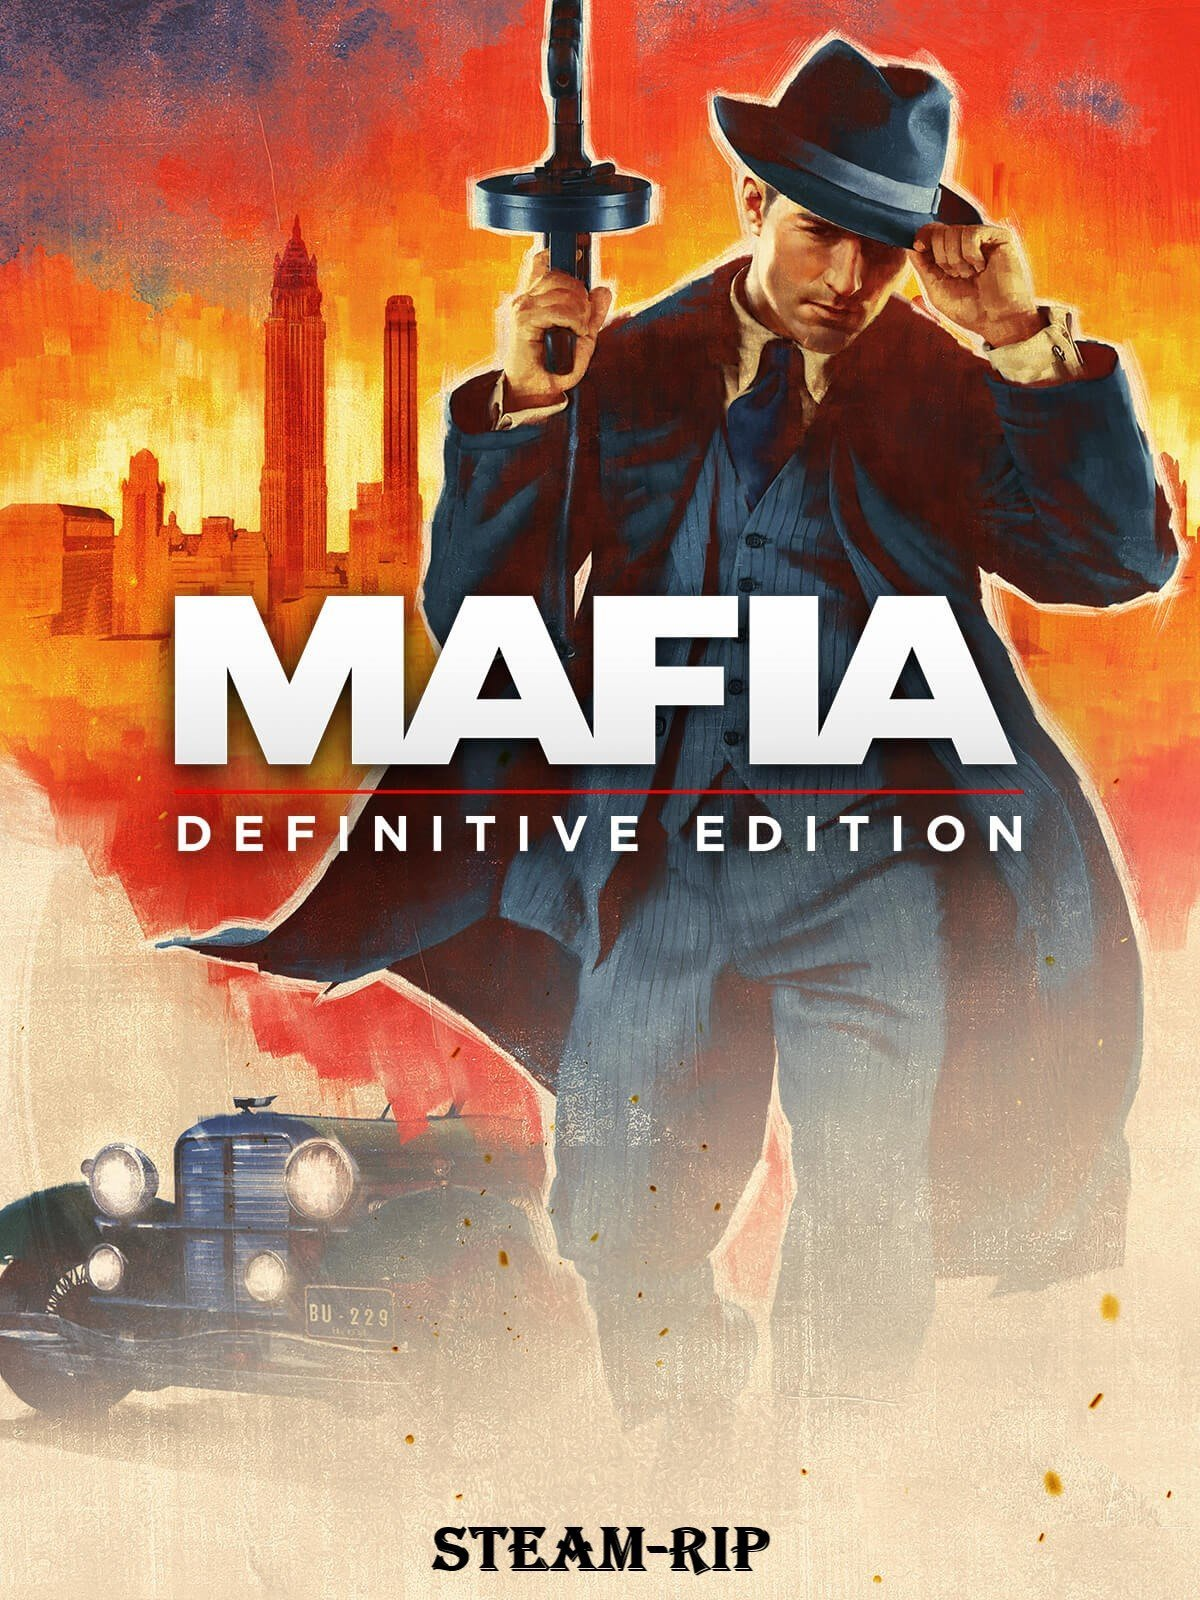 Mafia: Definitive Edition [Steam-Rip] (2020) (2020)